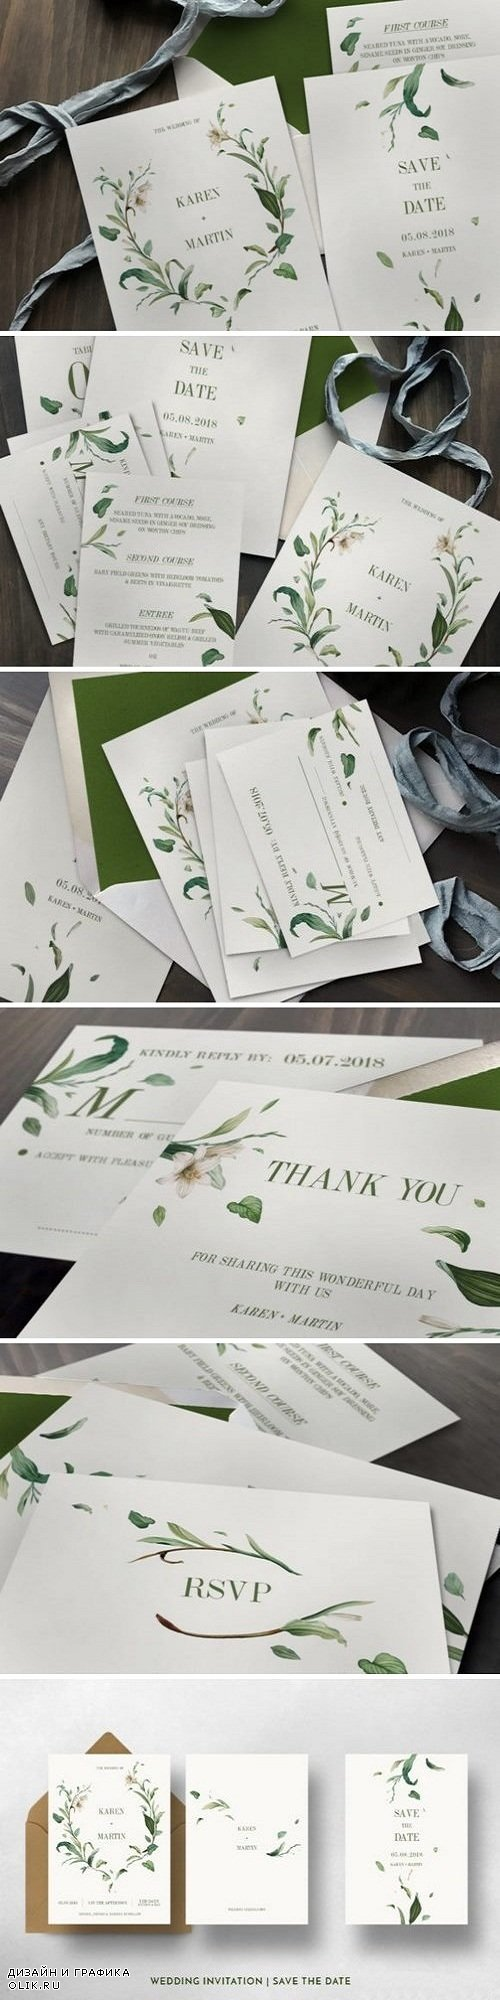 Green Foliage Wedding Invitation Suite 1116824